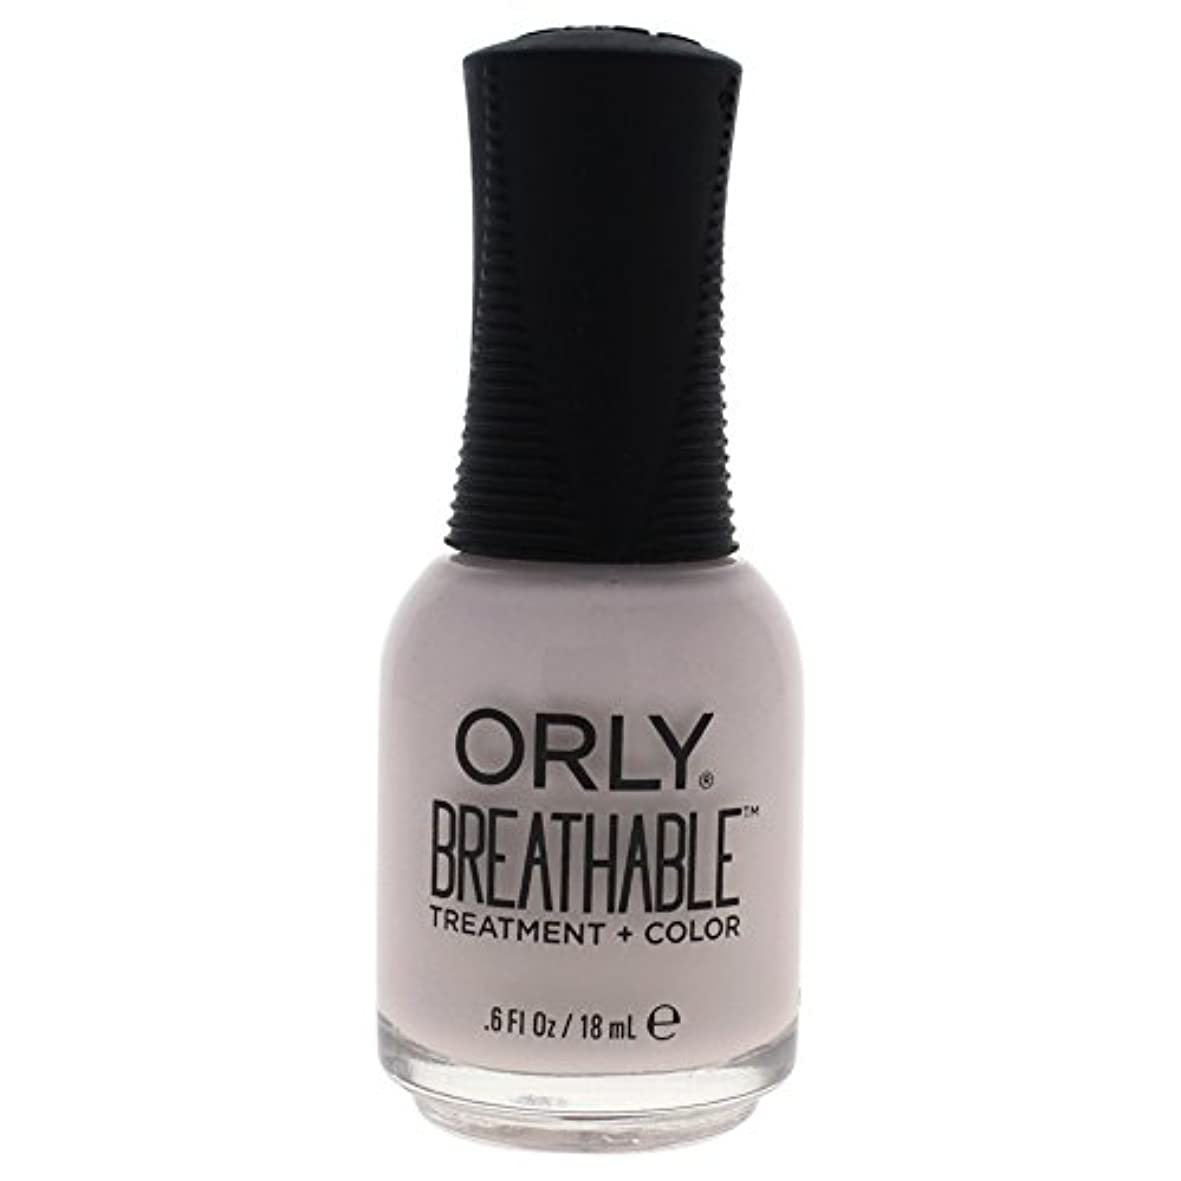 クロス不良排他的Orly Breathable Treatment + Color Nail Lacquer - Light as a Feather - 0.6oz / 18ml